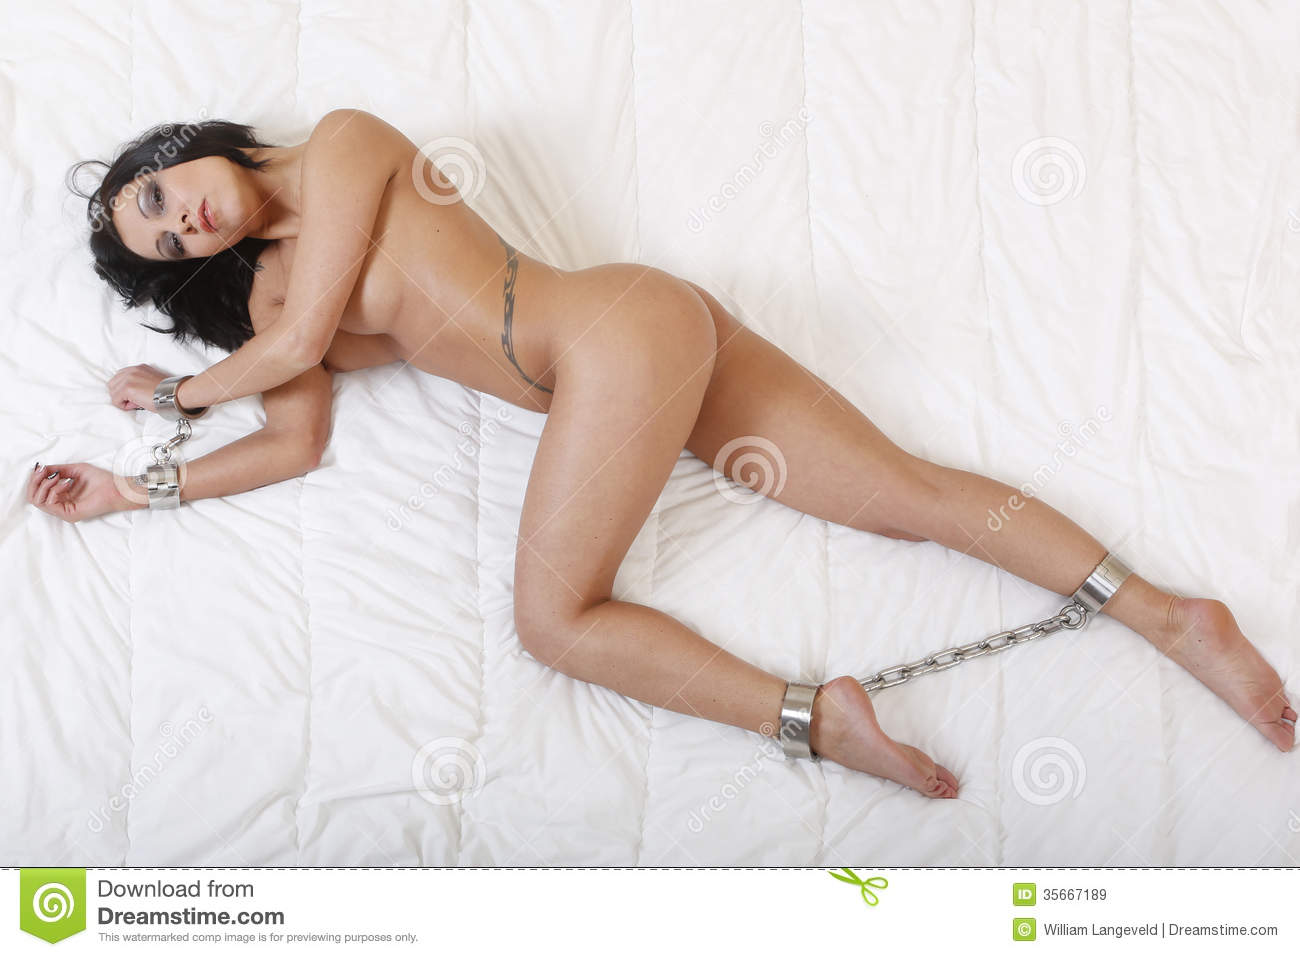 Beautiful Nude Or Naked Woman Handcuffed Stock Image -1057